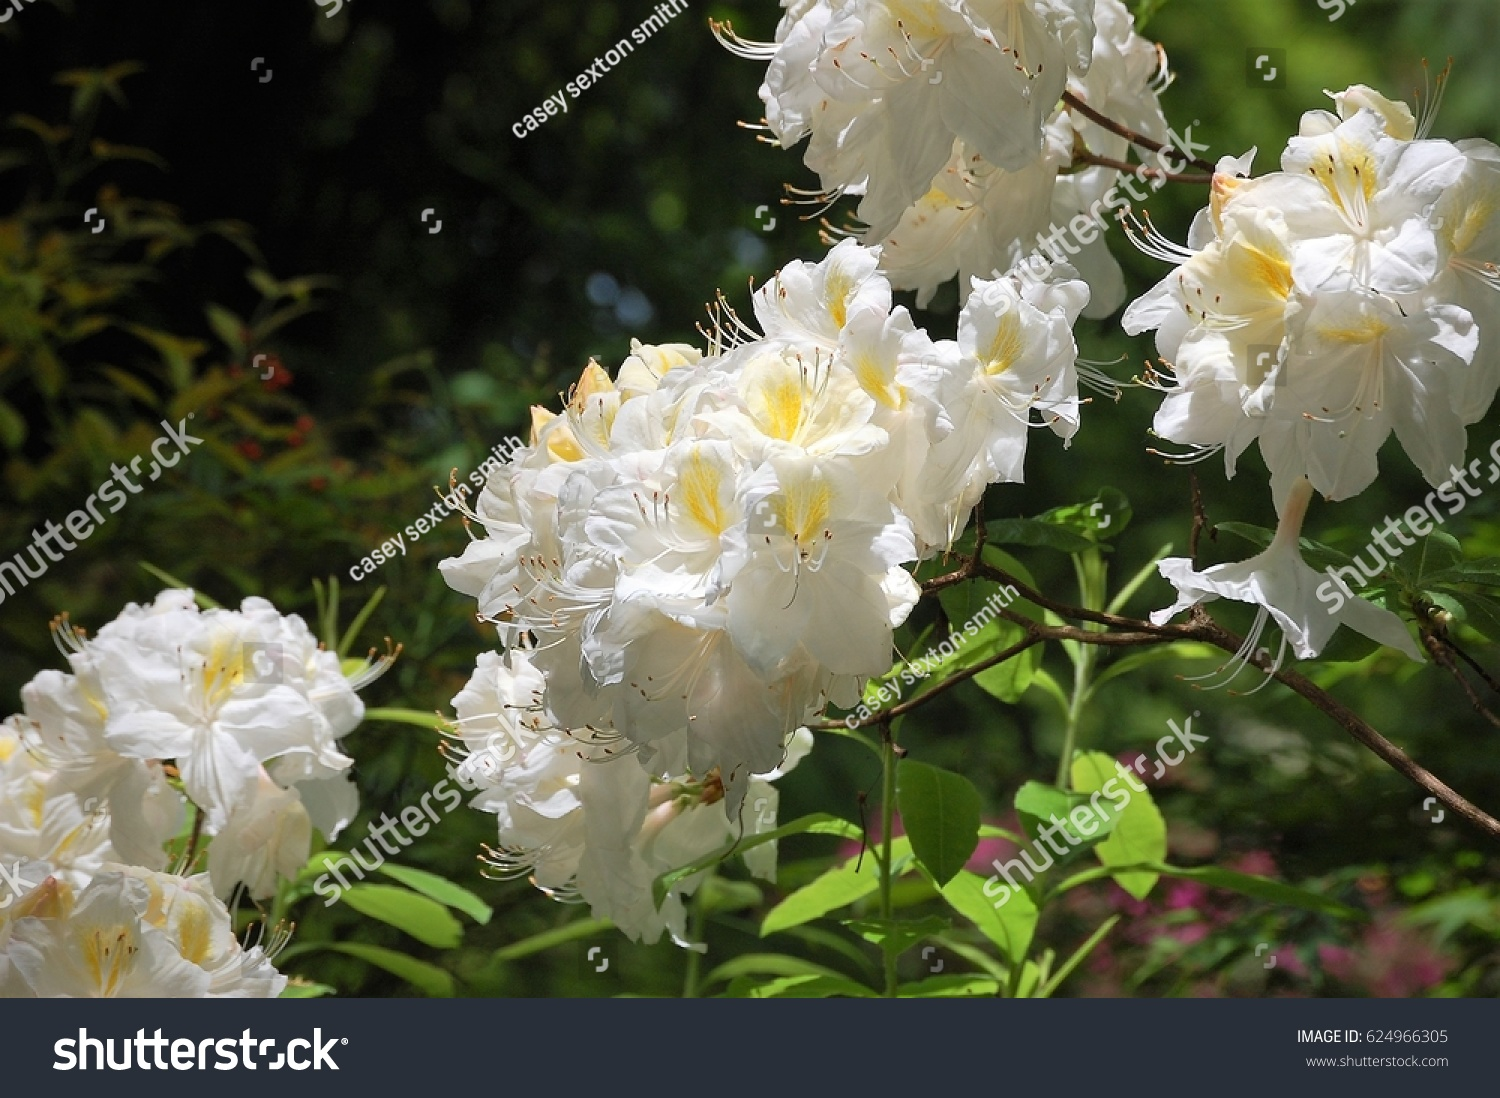 White Cluster Flowers Stock Photo Royalty Free 624966305